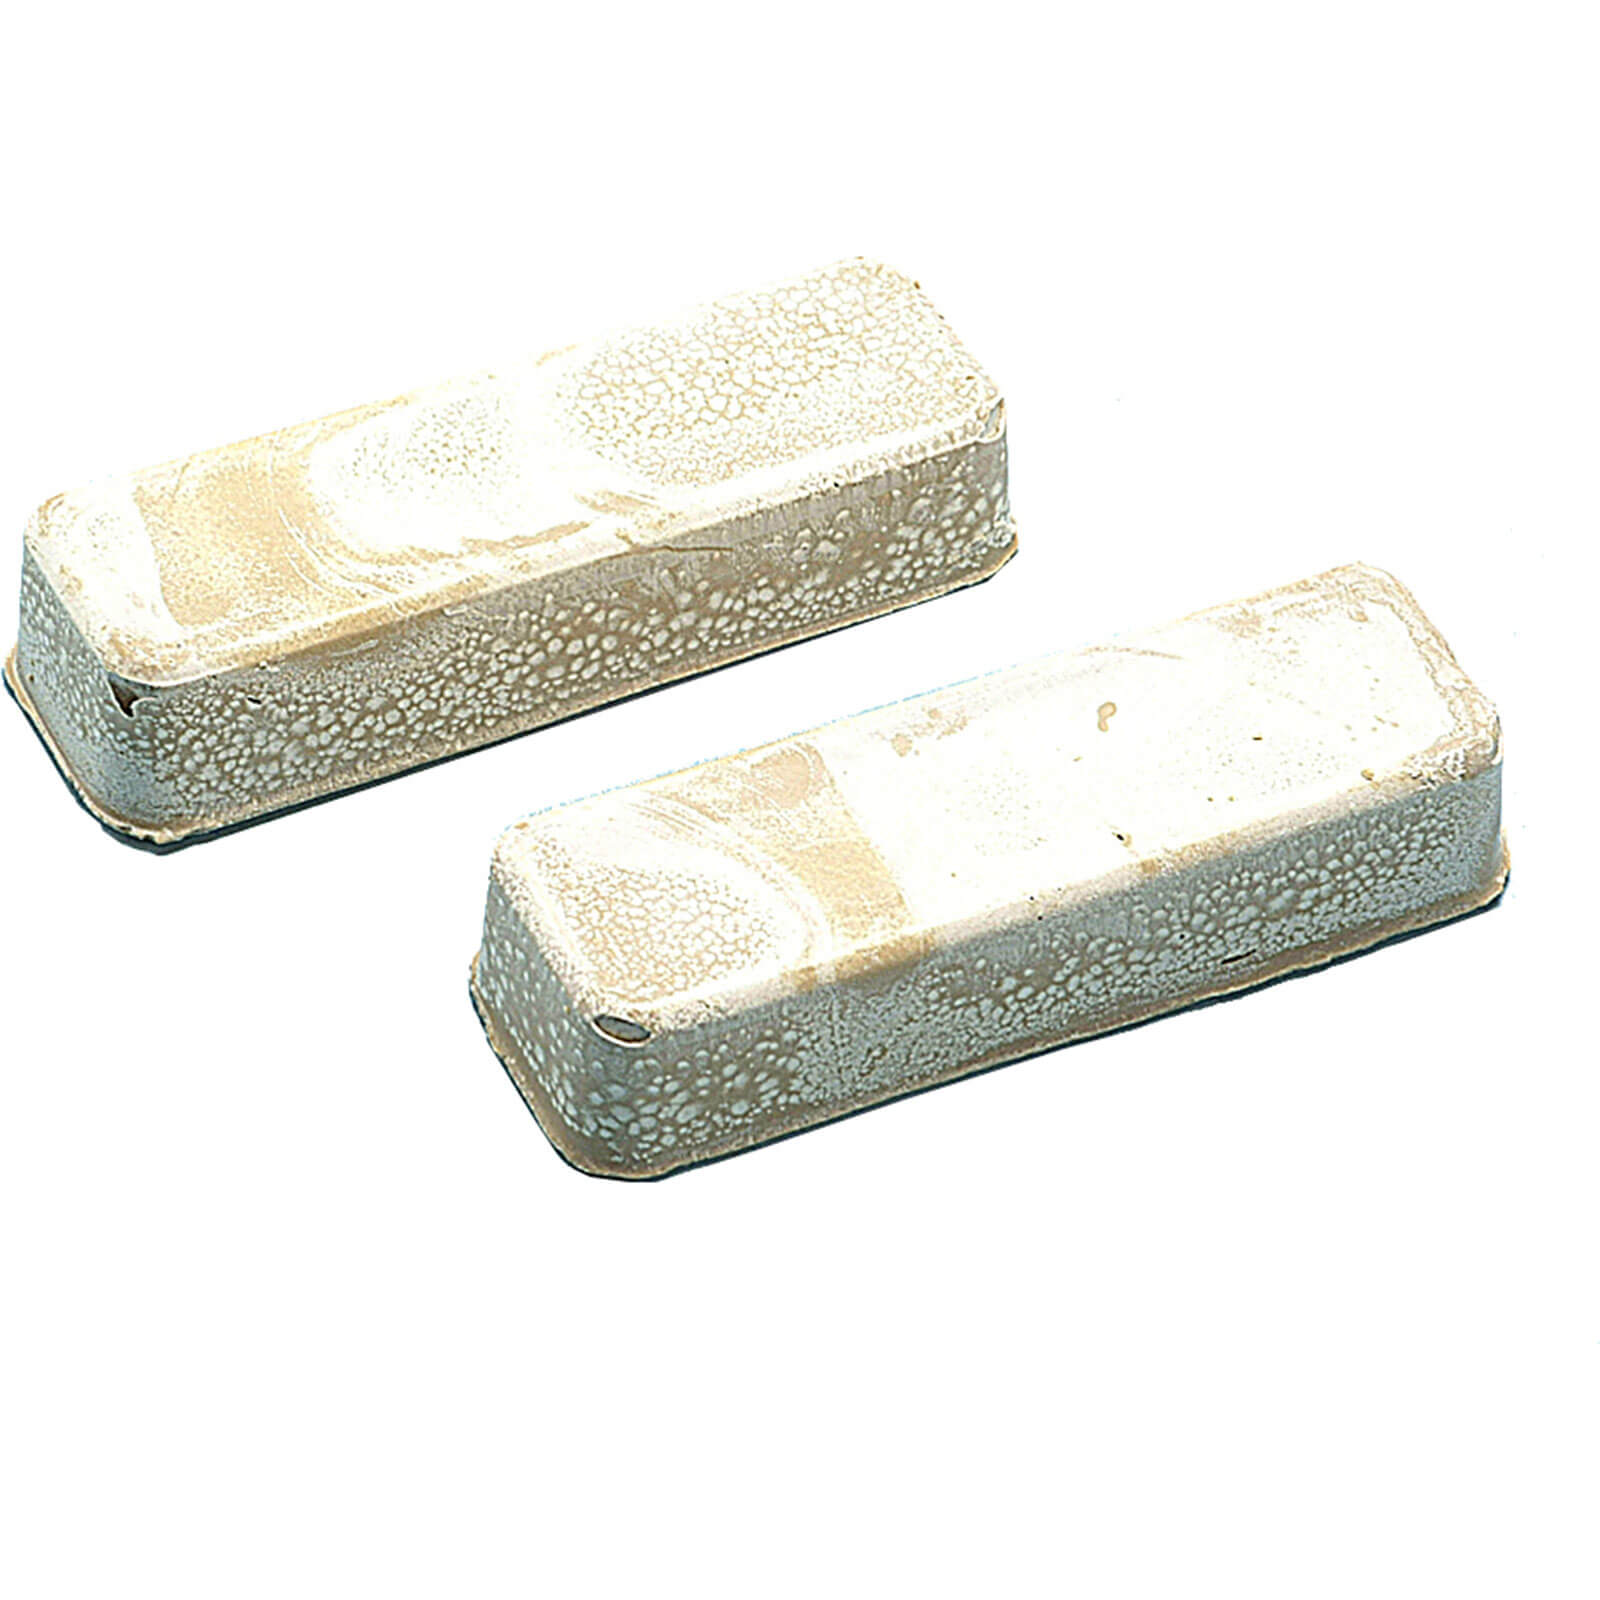 Image of Zenith Profin Plastmax Polishing Bars Buff Pack of 2